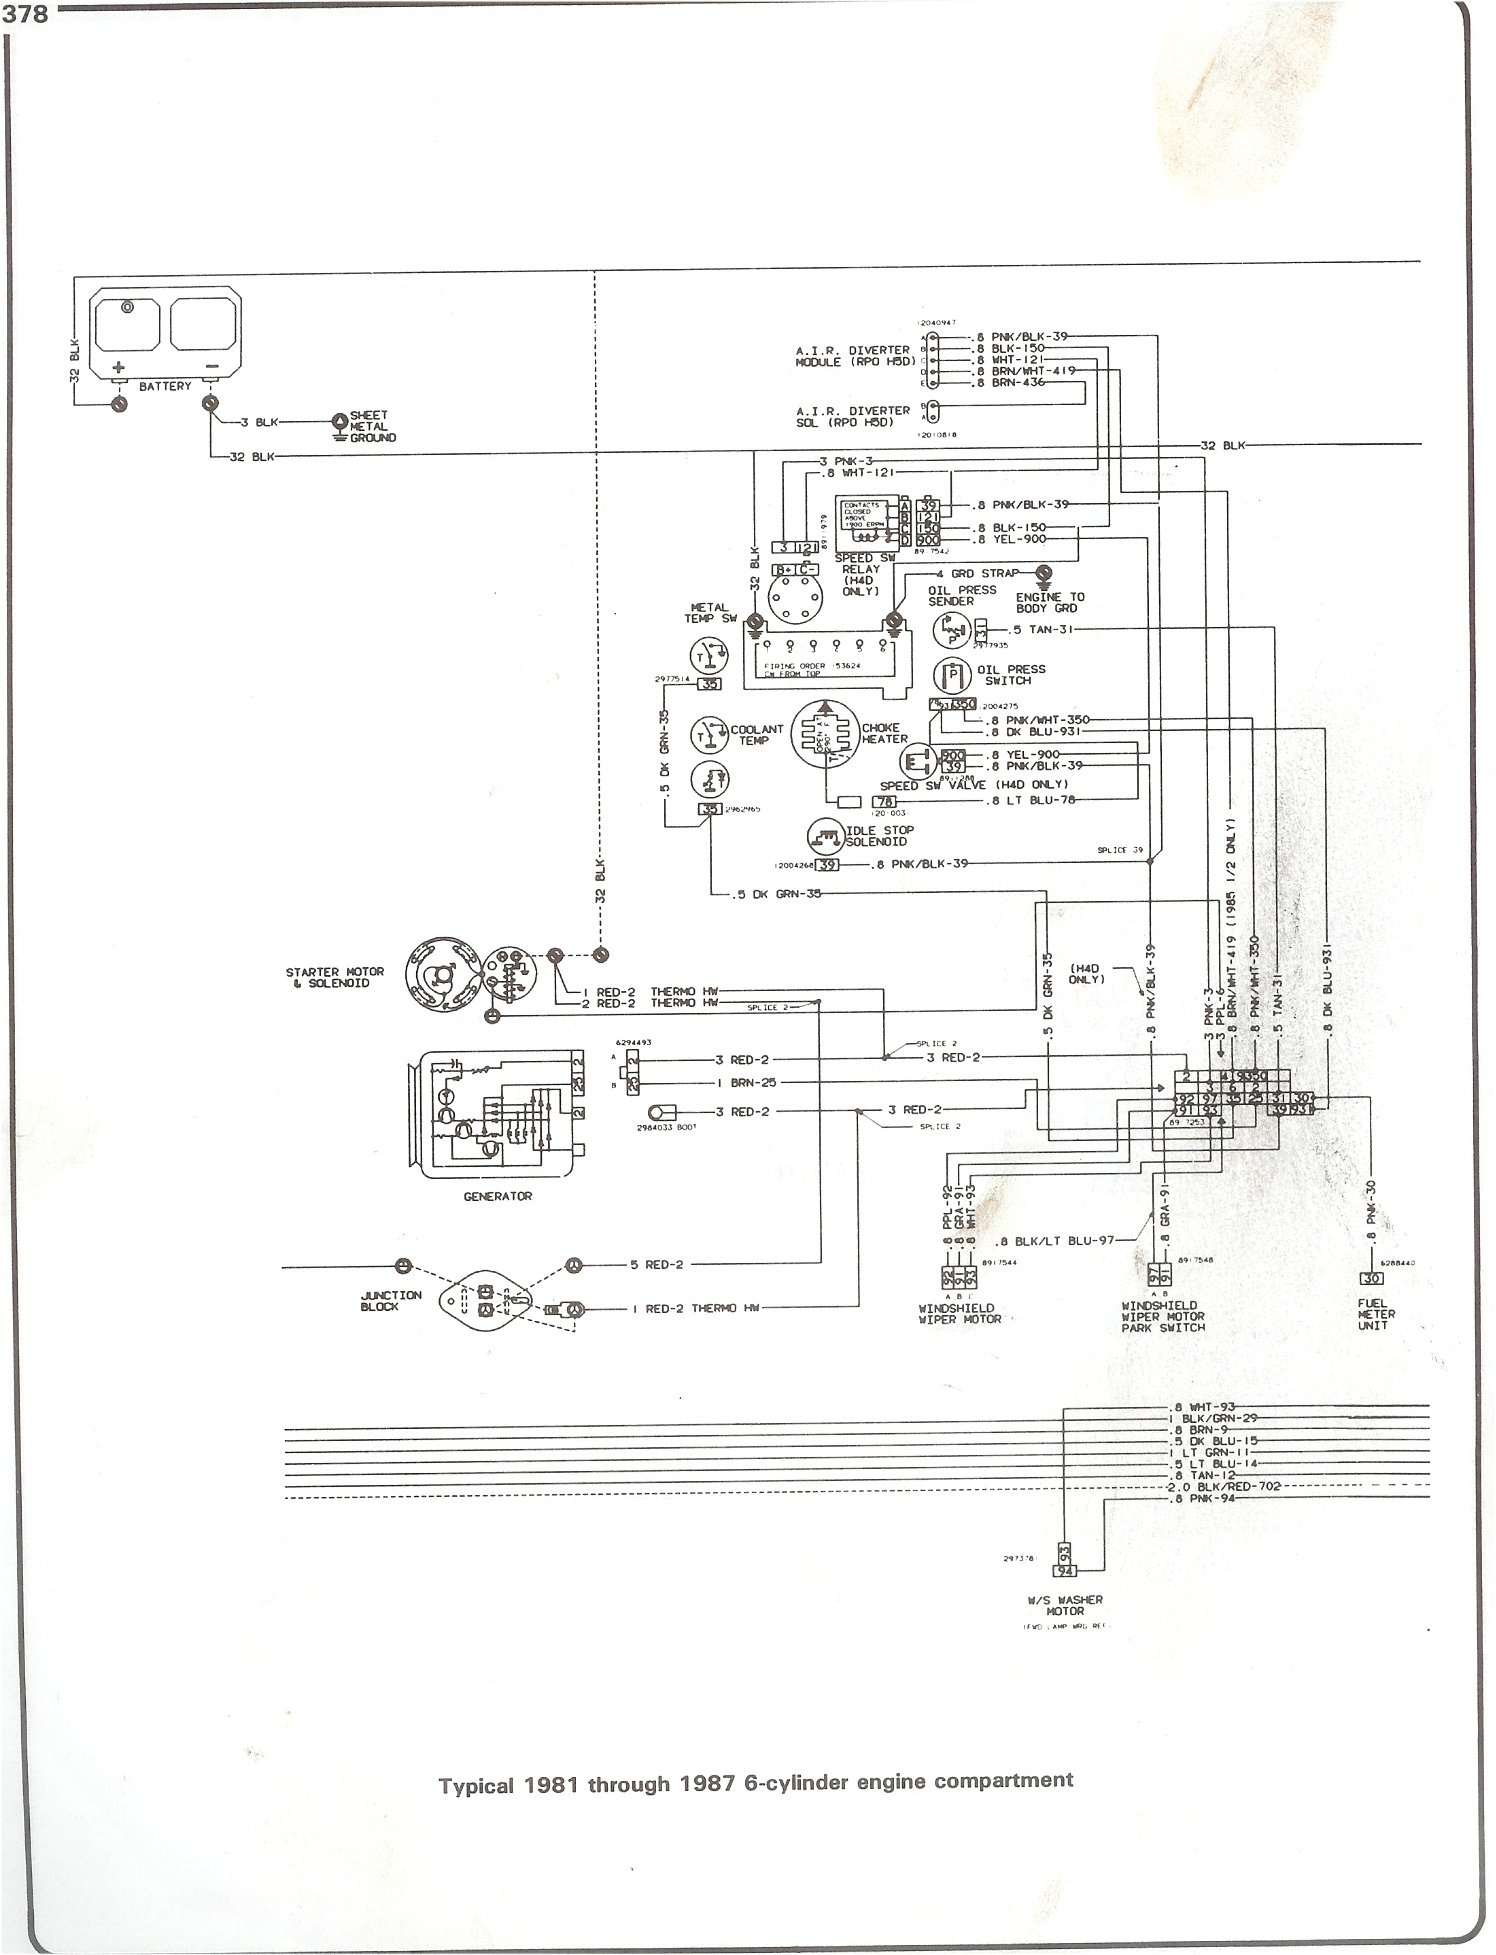 Complete 73 87 Wiring Diagrams 82 Corvette Fuse Box Diagram 81 I6 Engine Compartment